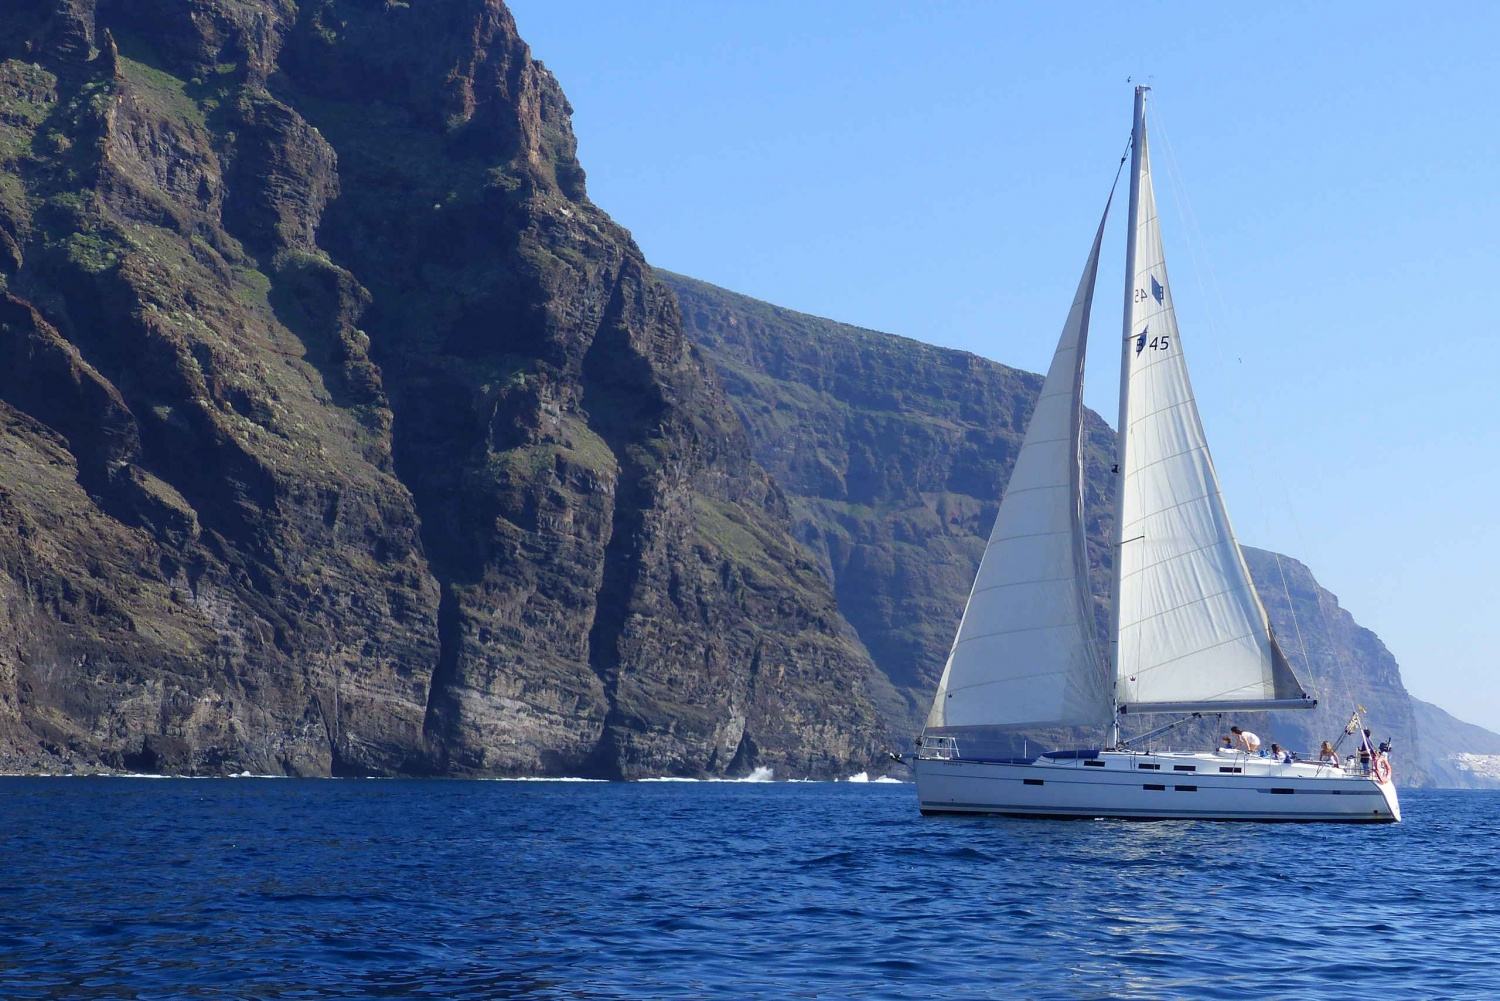 Los Gigantes Whale Watching Cruise by Sail Boat